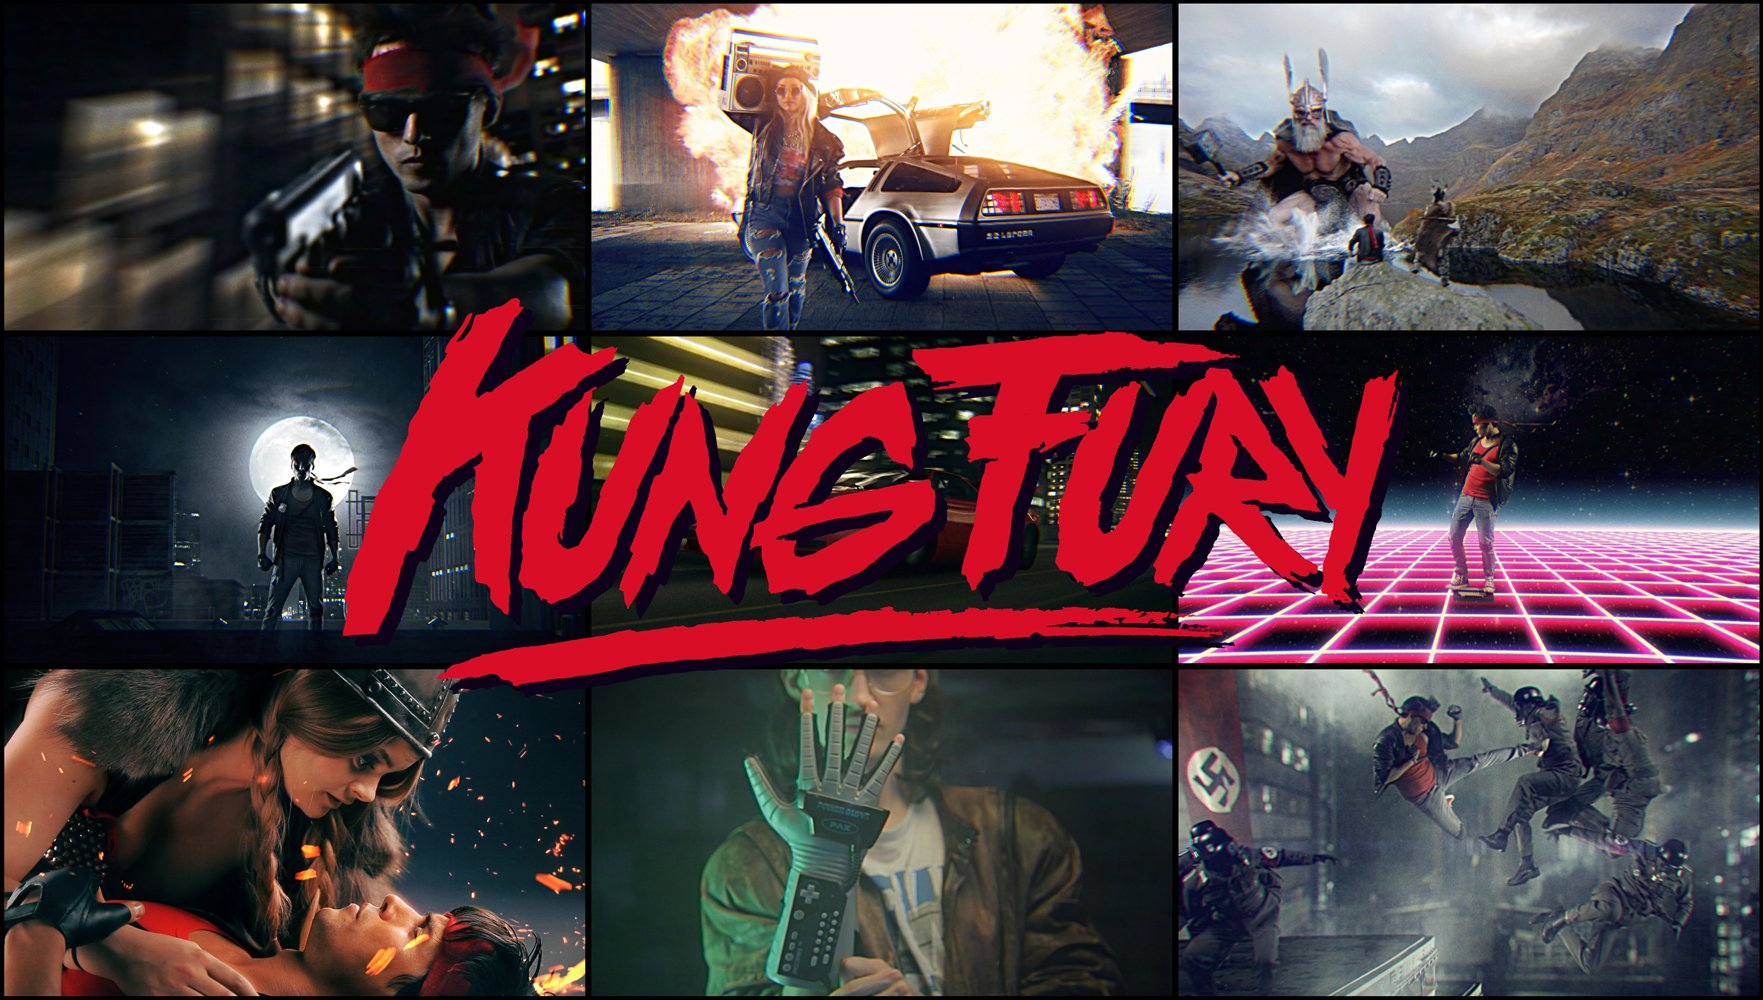 Kung Fury - Critique du court métrage de David Sandberg